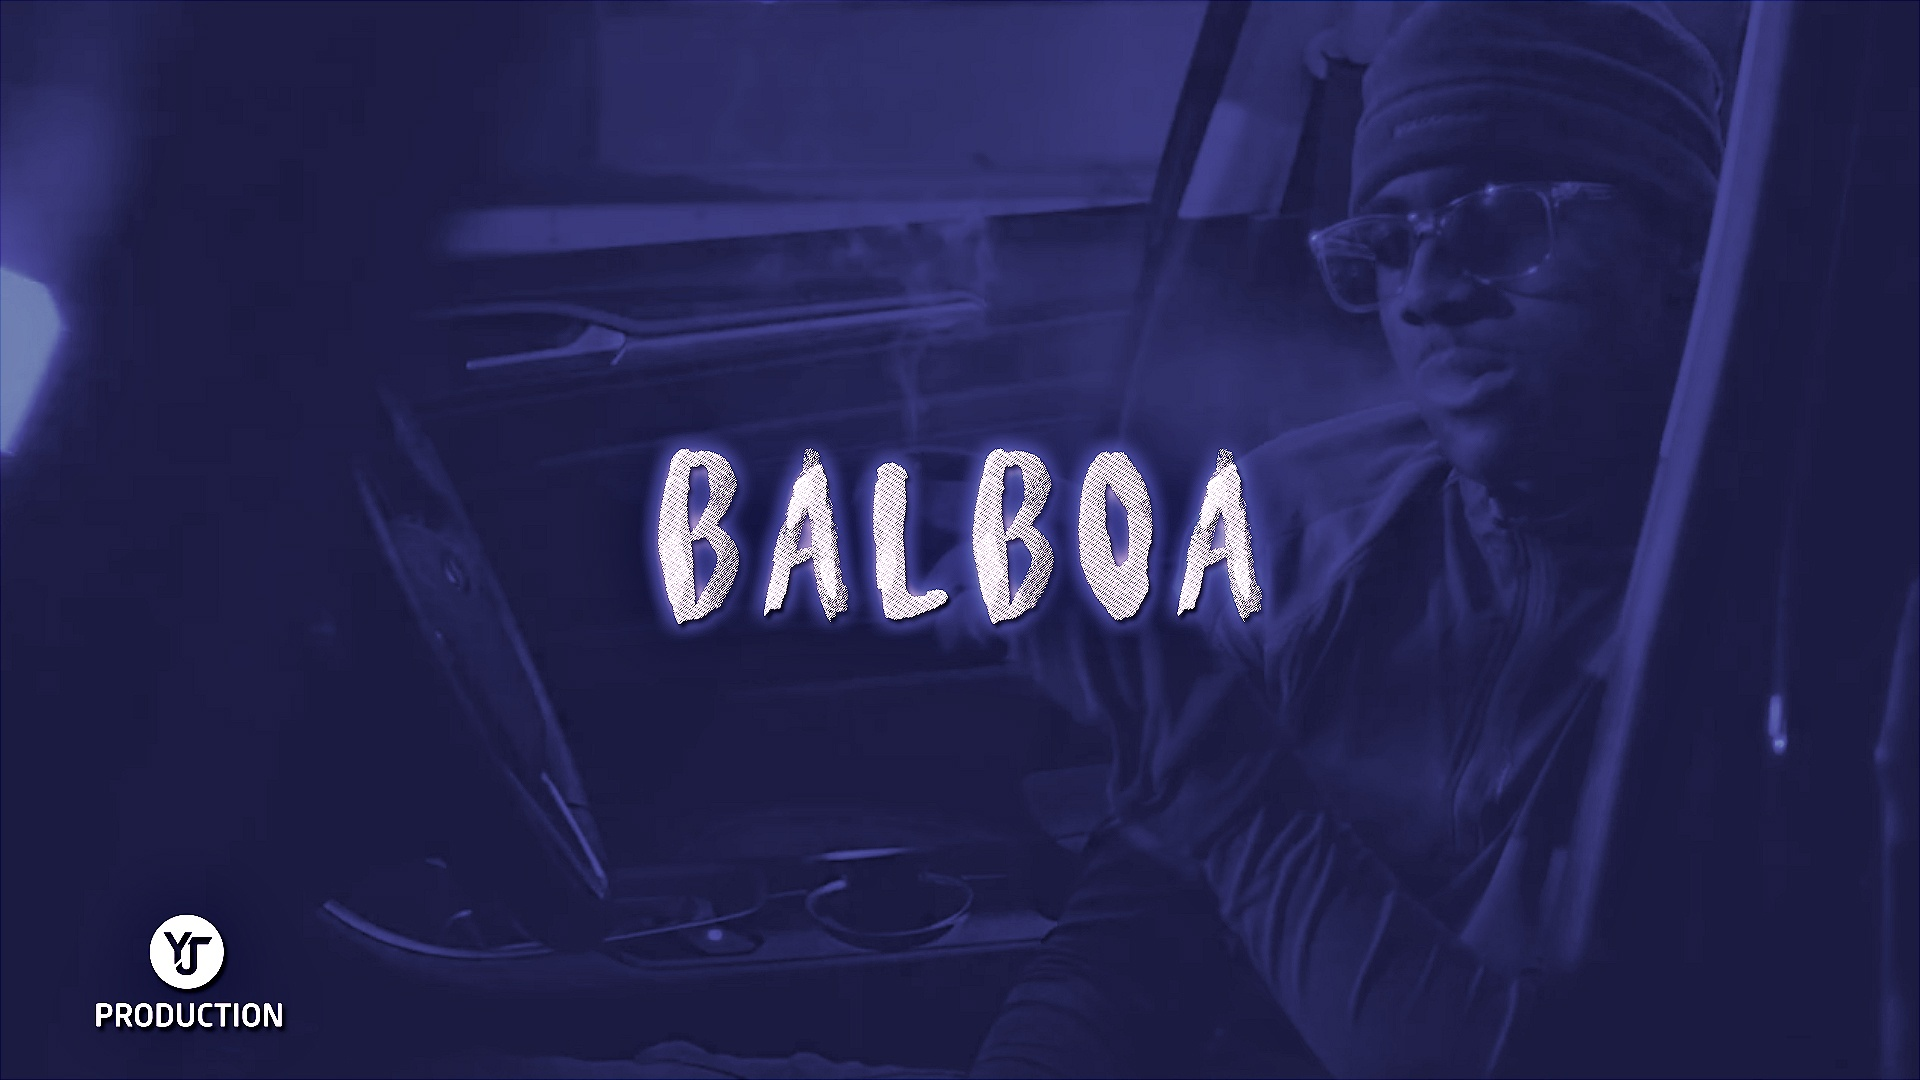 [PISTES] BALBOA | YJ Production